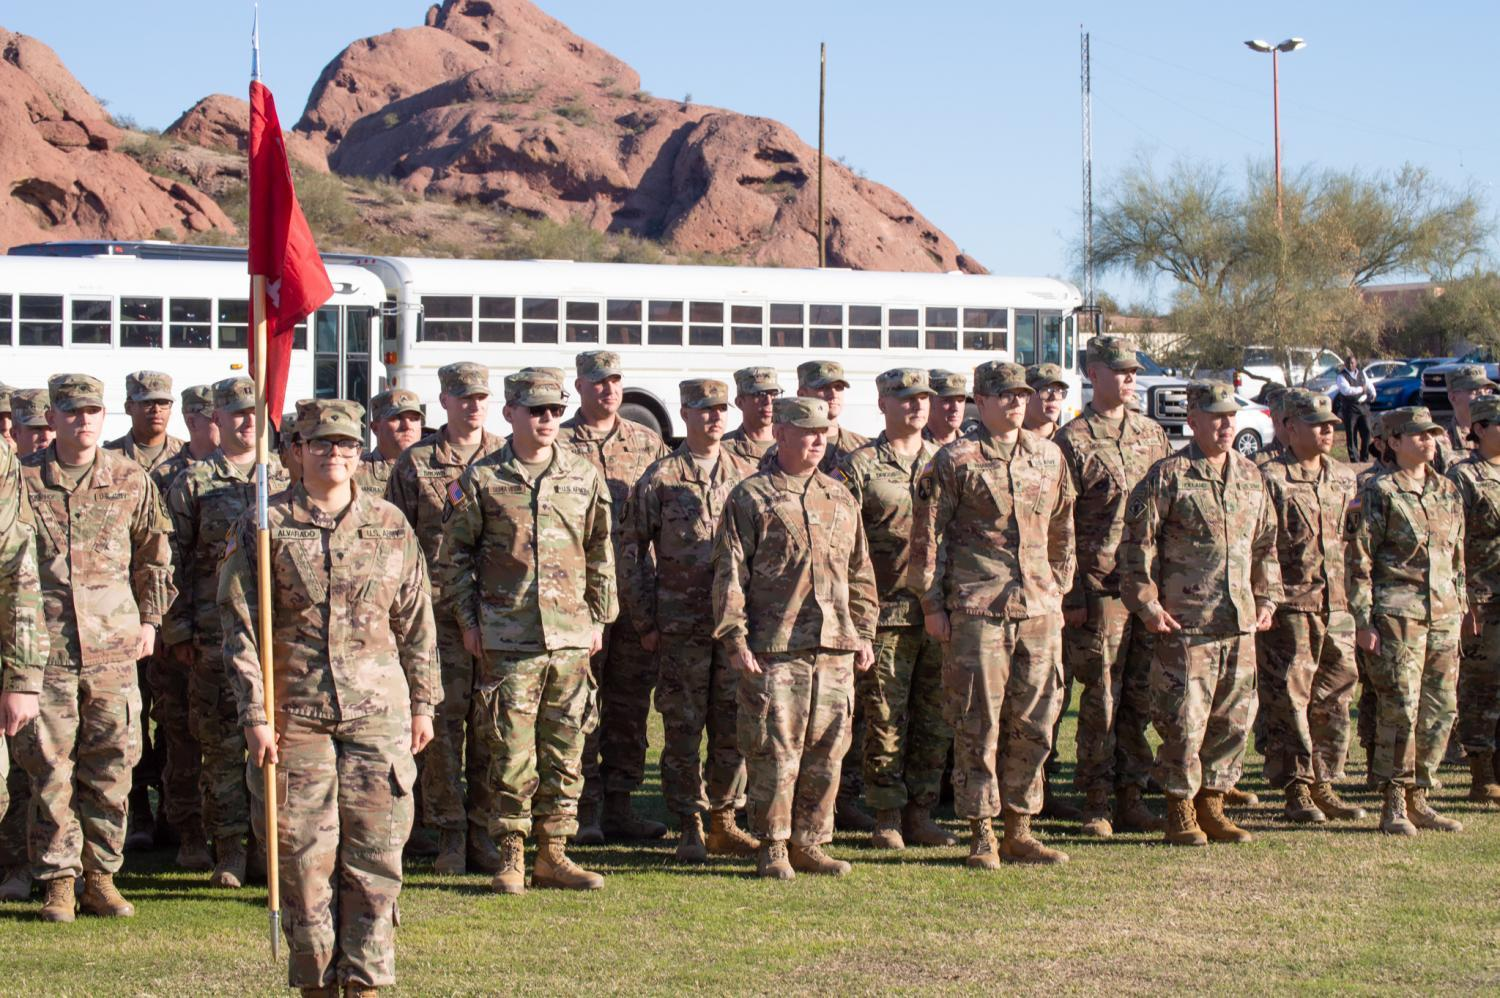 Soldiers from the Arizona National Guard